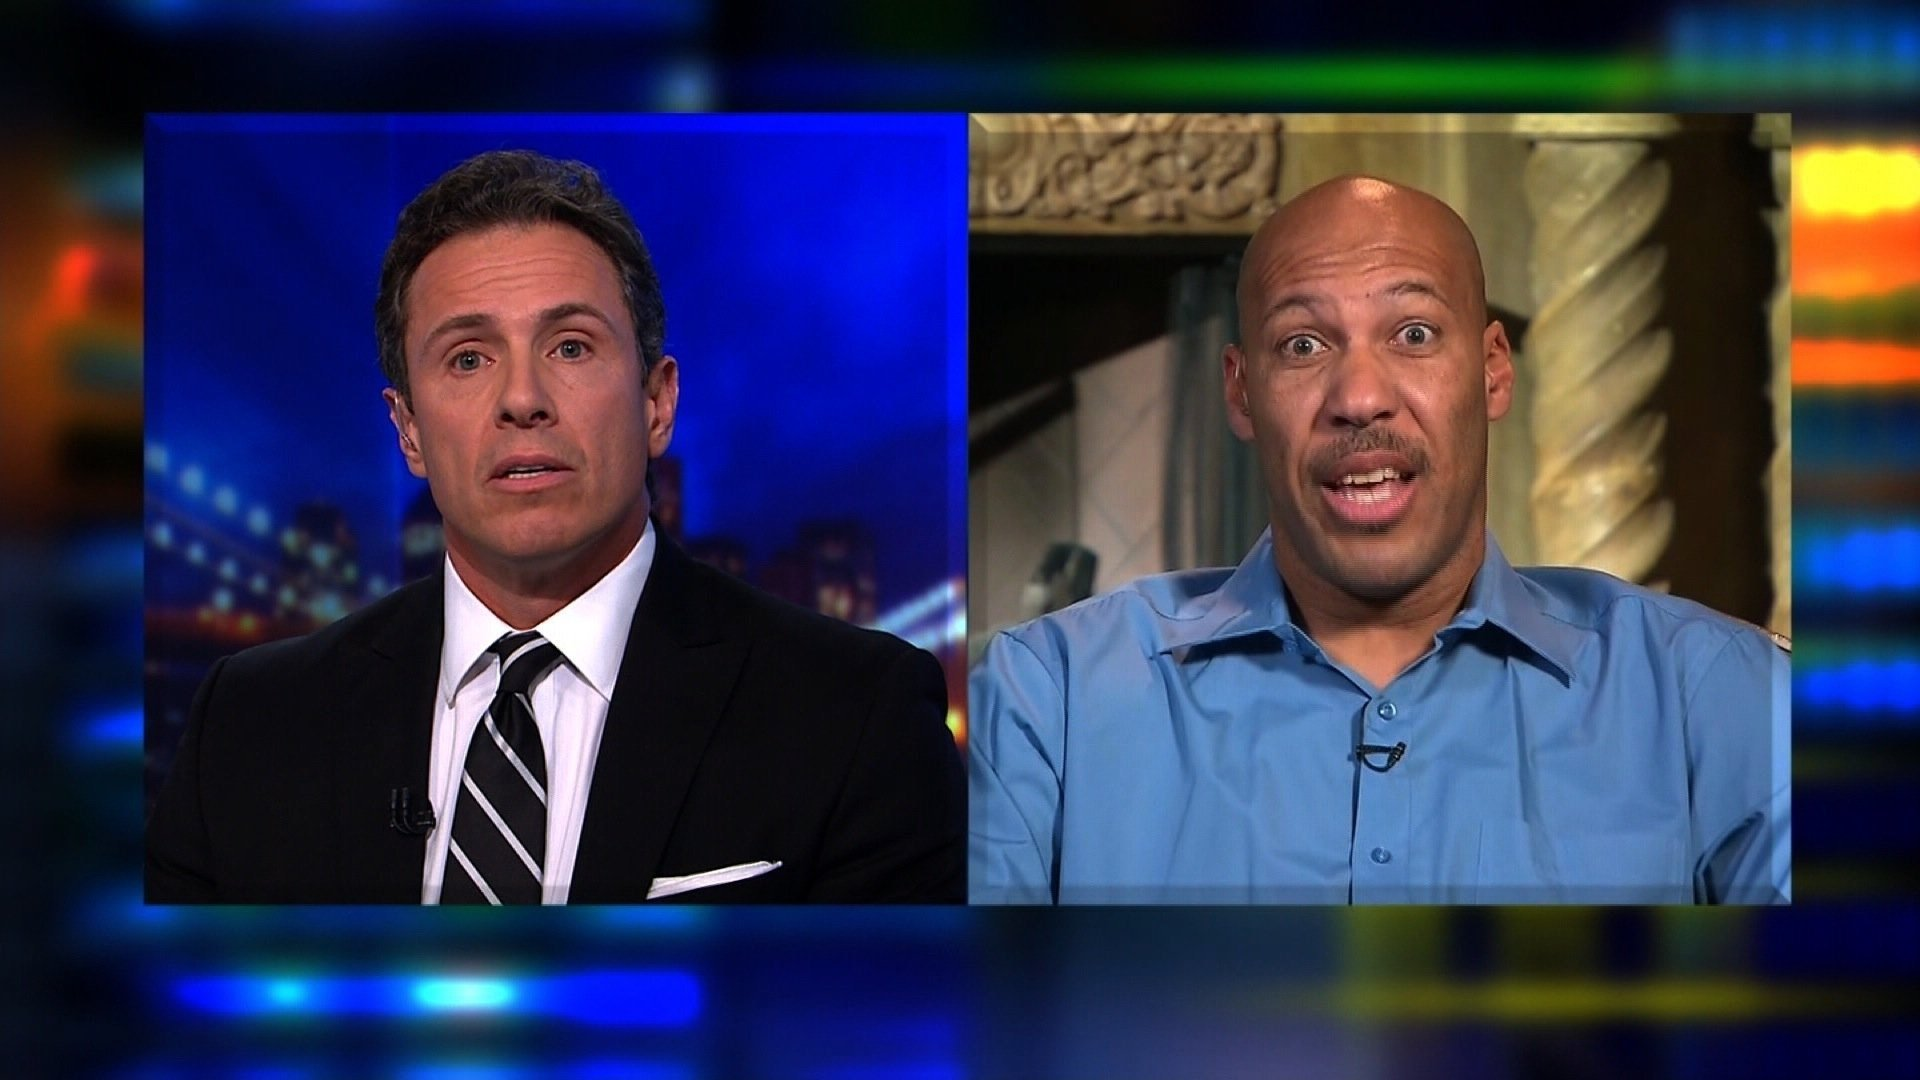 LaVar Ball denies being in a feud with President Donald Trump but repeatedly refused to issue a